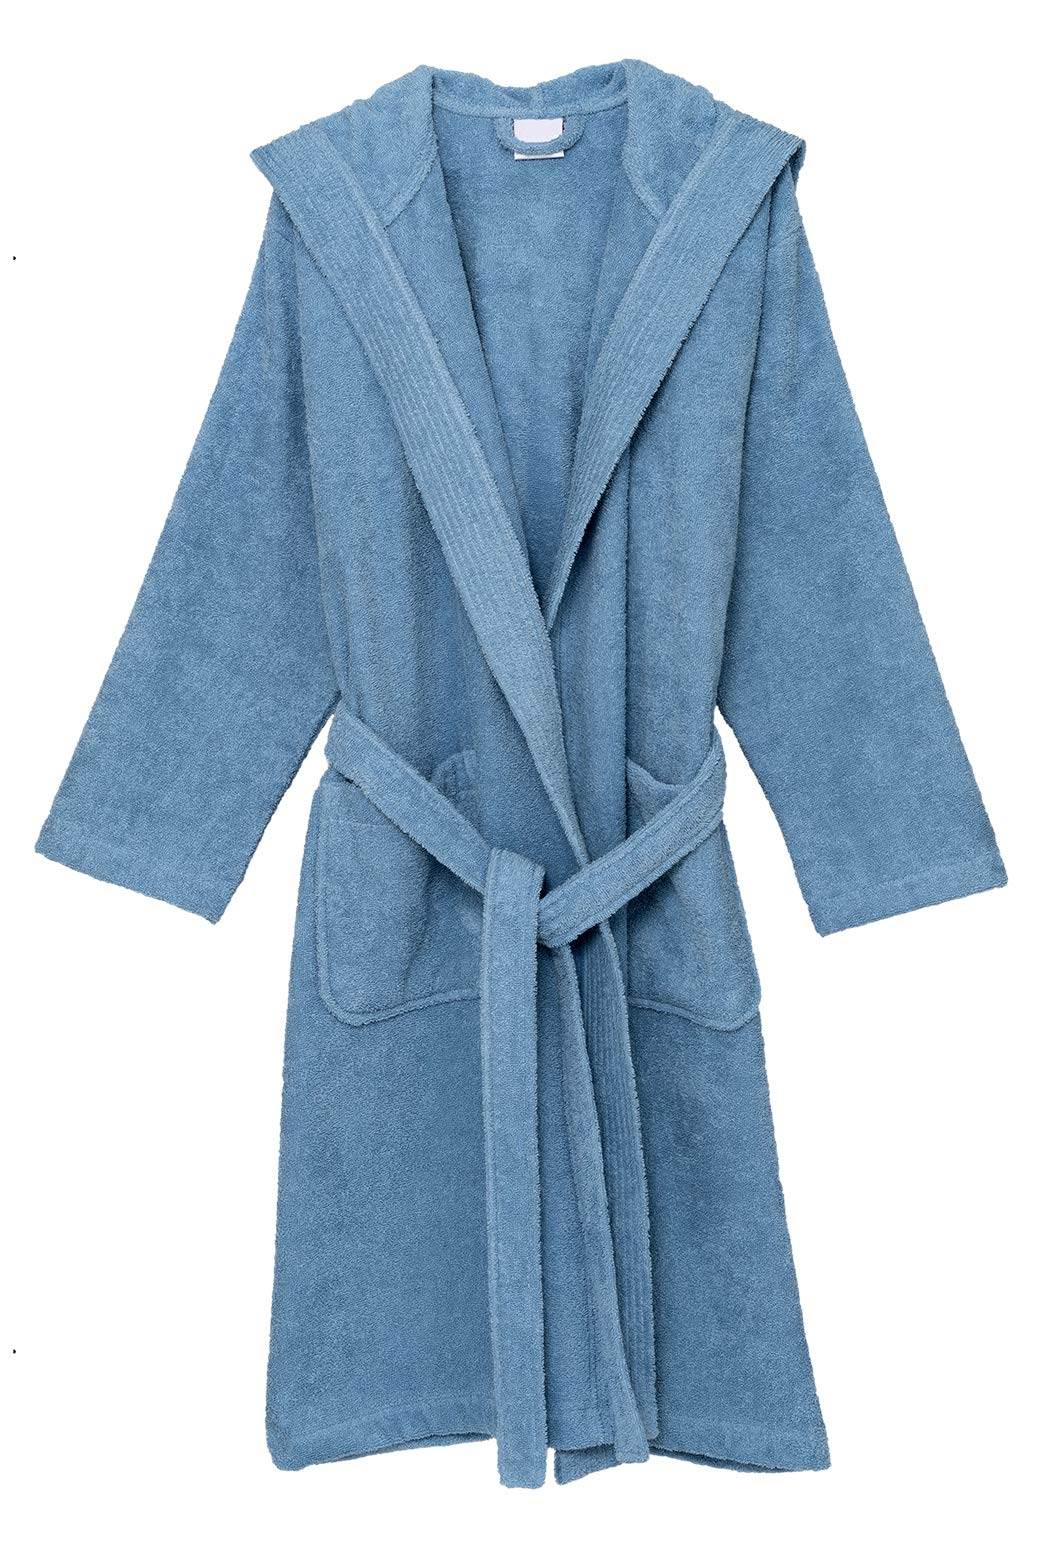 TowelSelections Men's Hooded Robe, Cotton Terry Cloth Bathrobe Large Blue